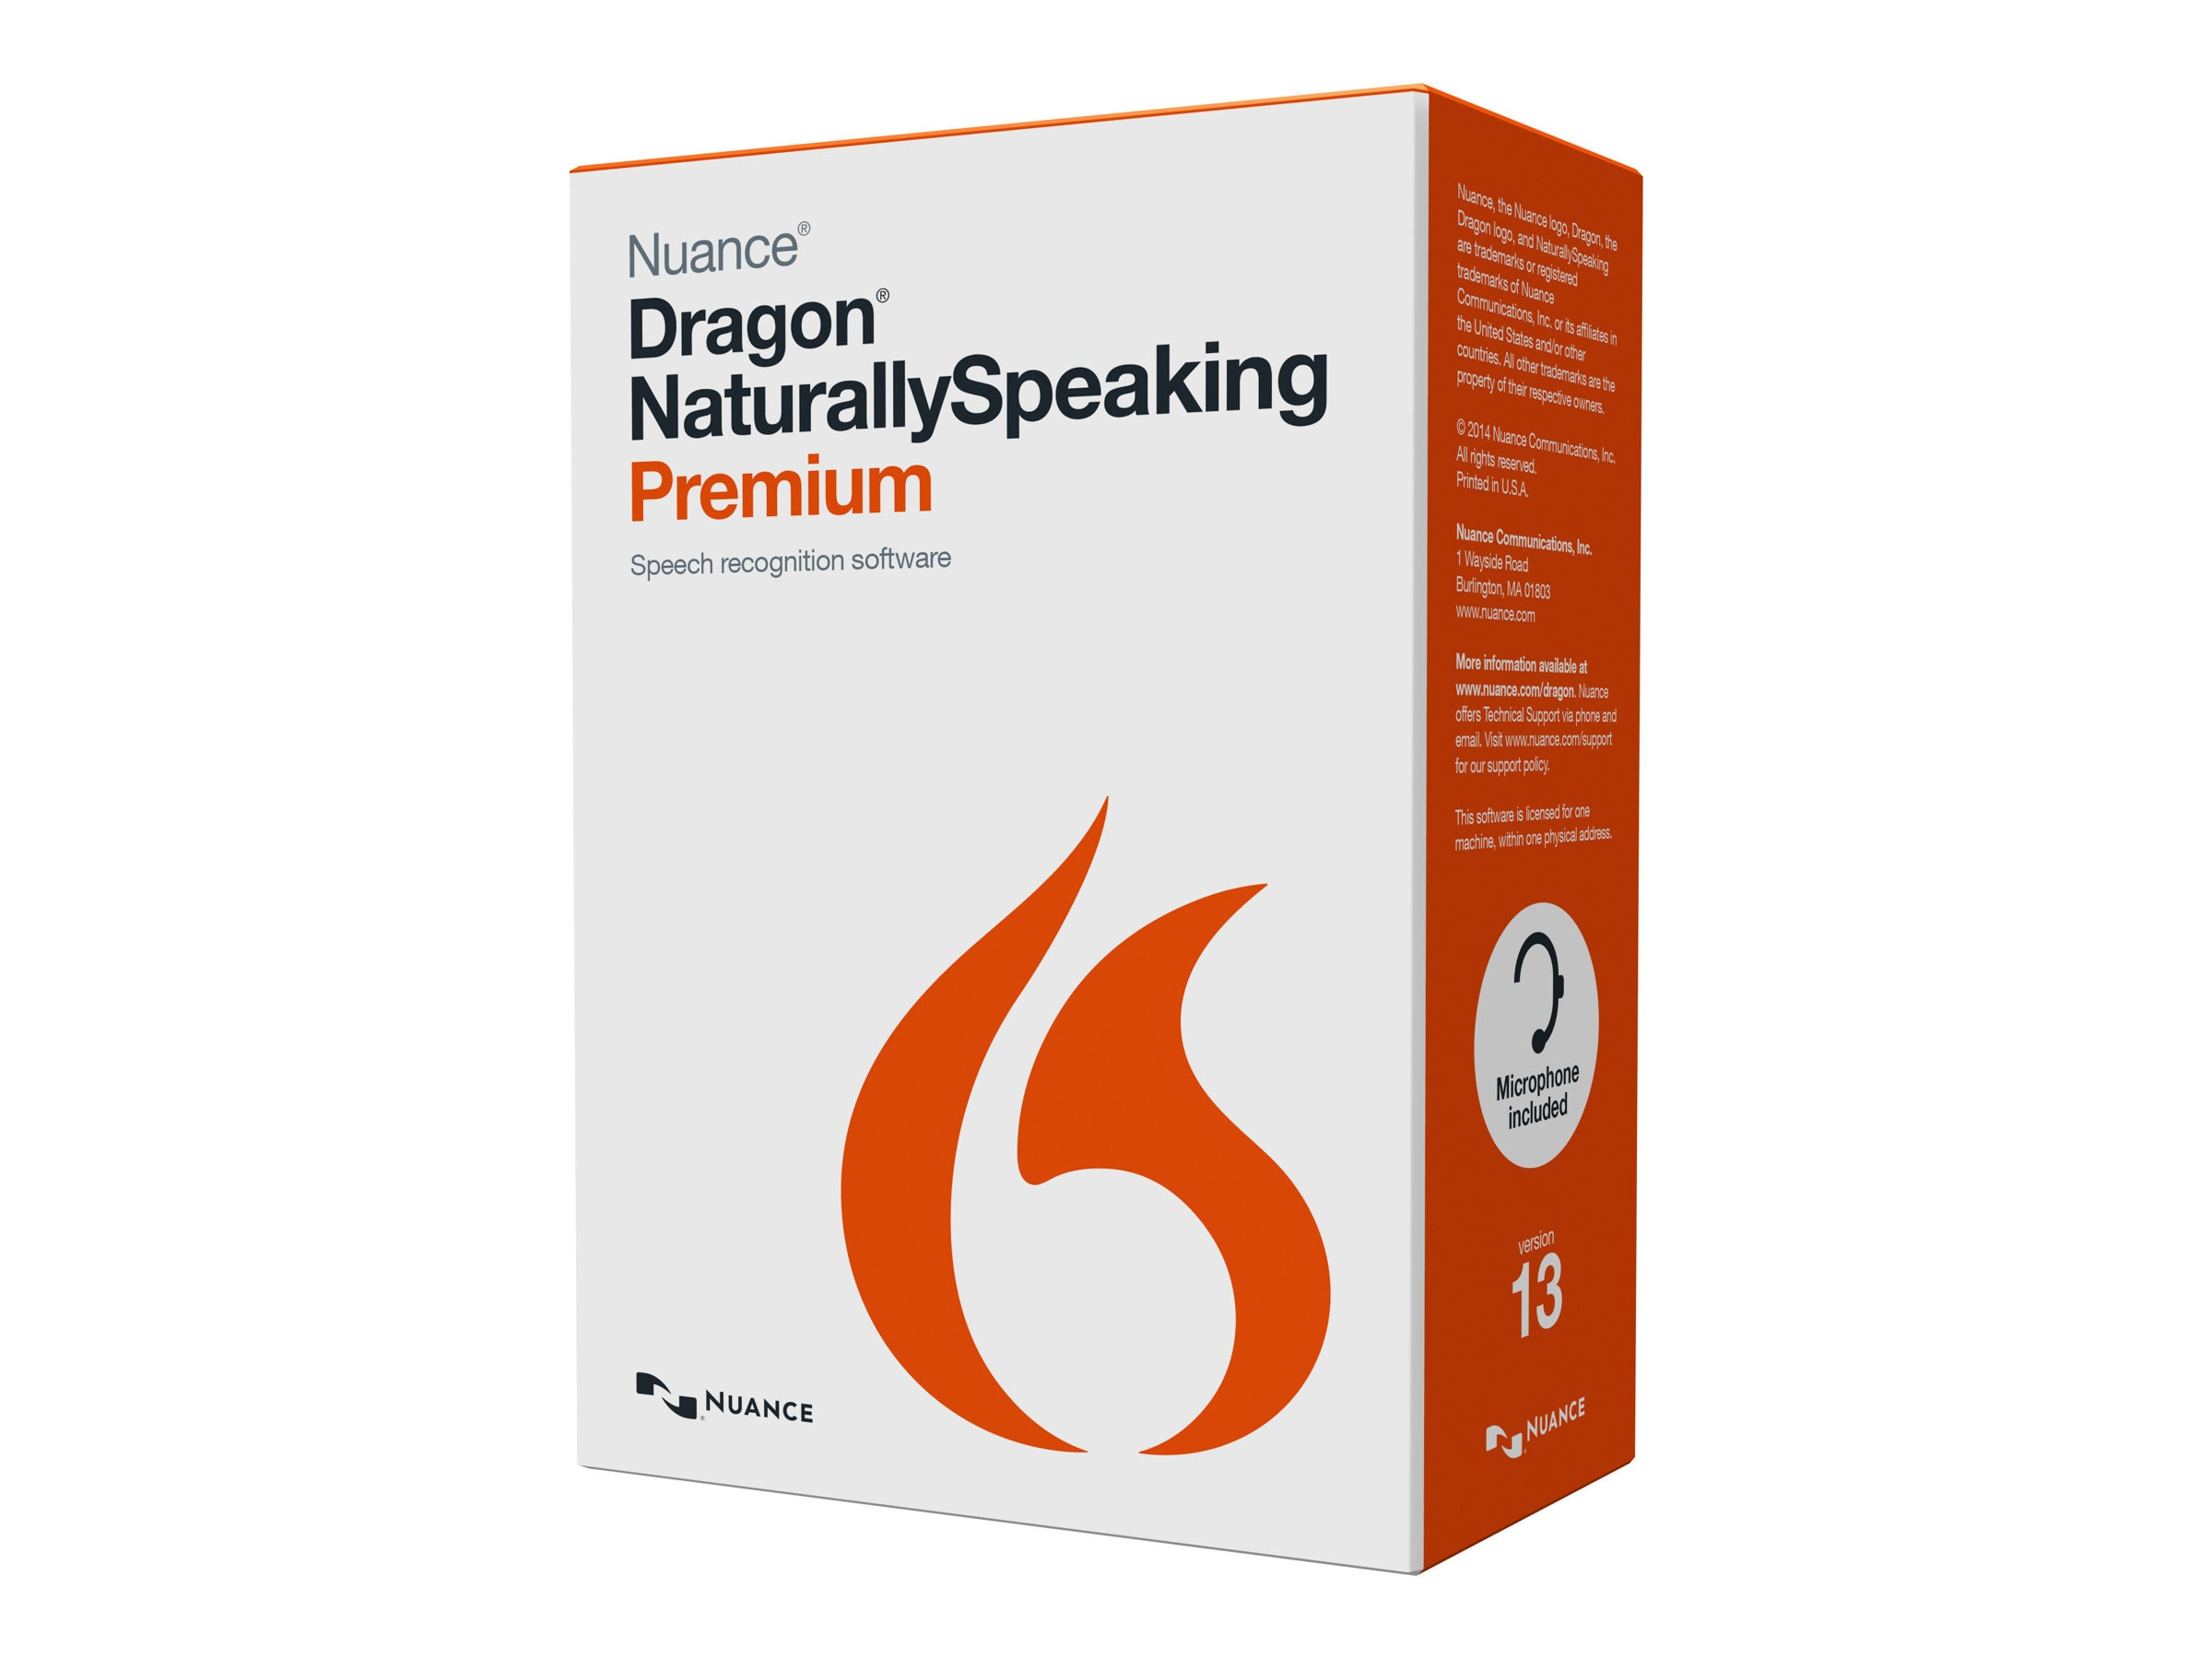 Nuance Dragon NaturallySpeaking 13.0 Premium US Mailer Without Headset, K609A-K1A-13.0, 17684331, Software - Voice Recognition